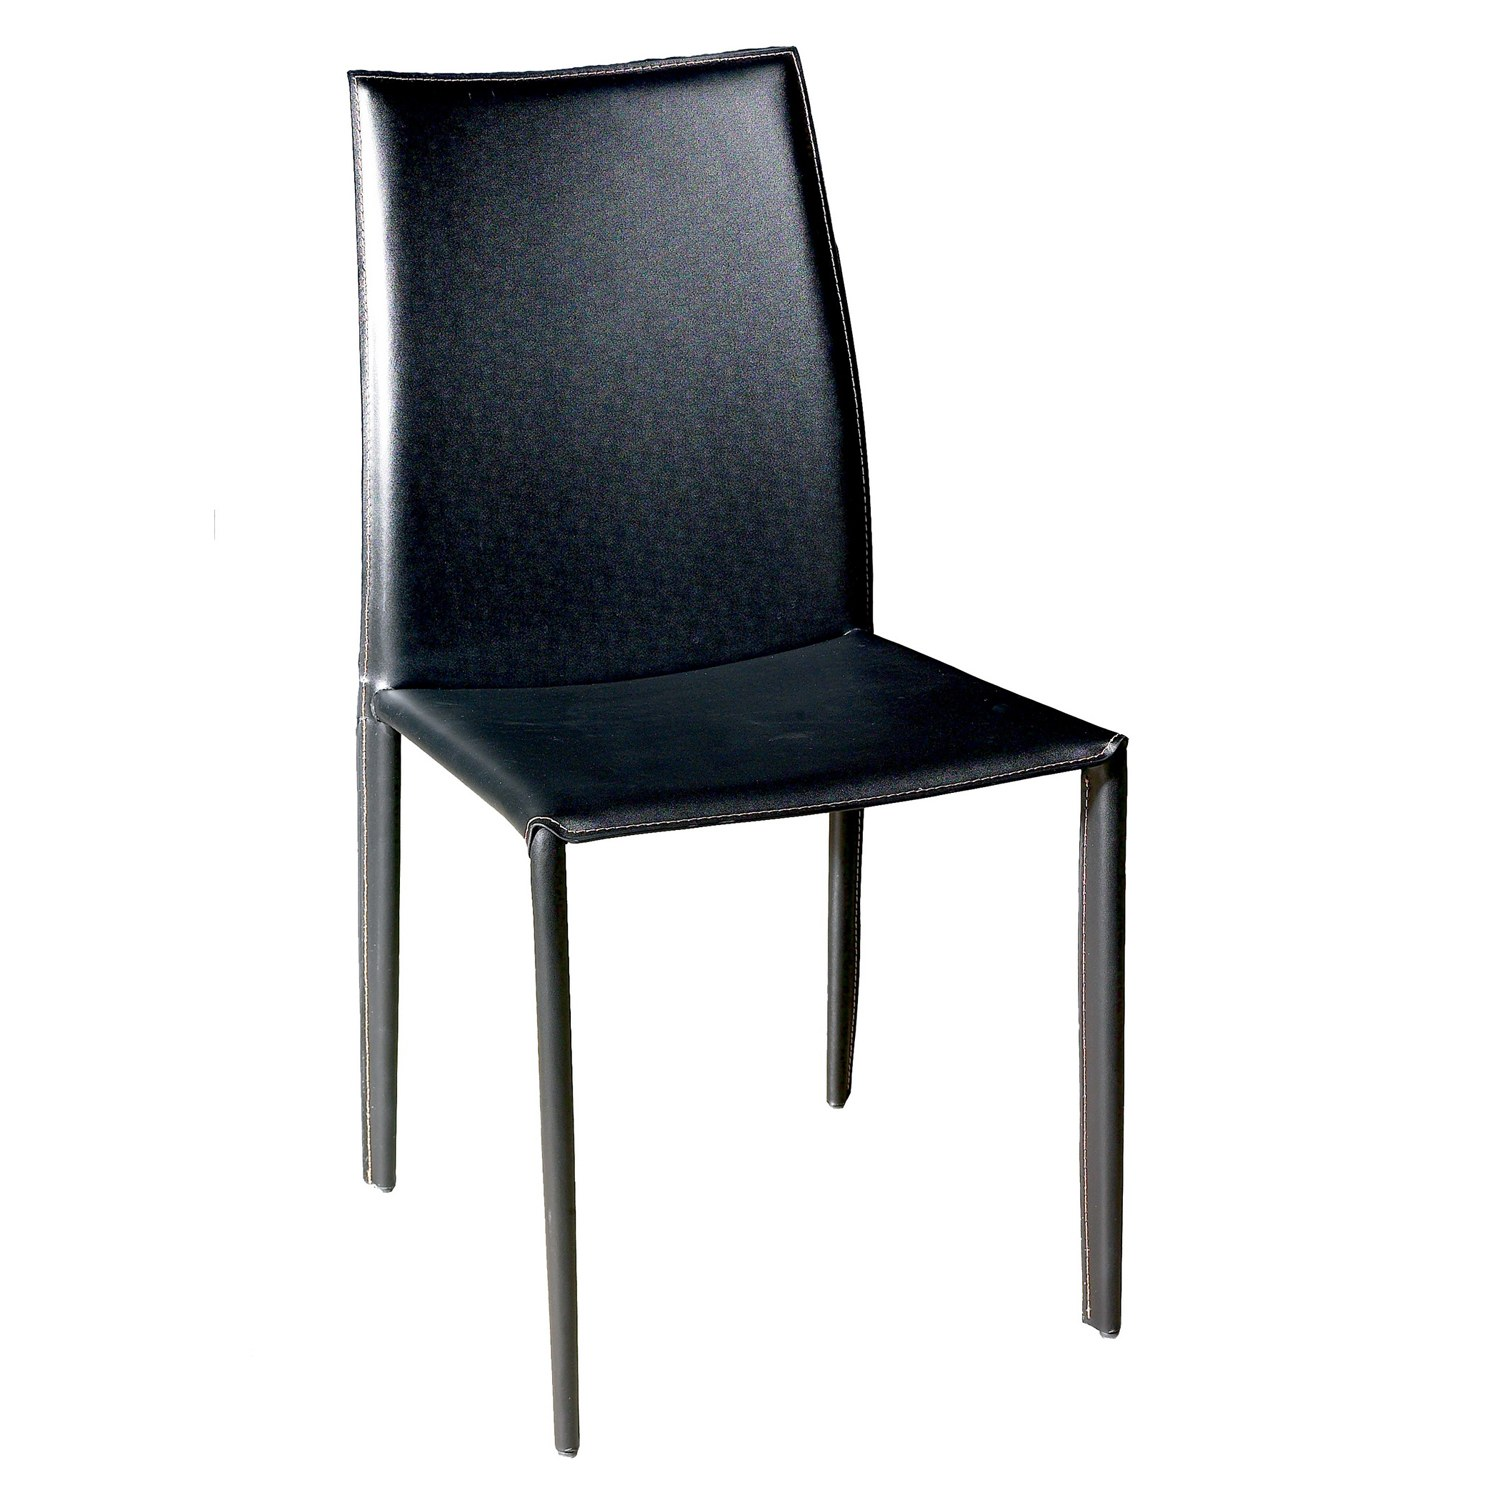 Baxton studio rockford modern and contemporary black for Modern black leather dining chairs